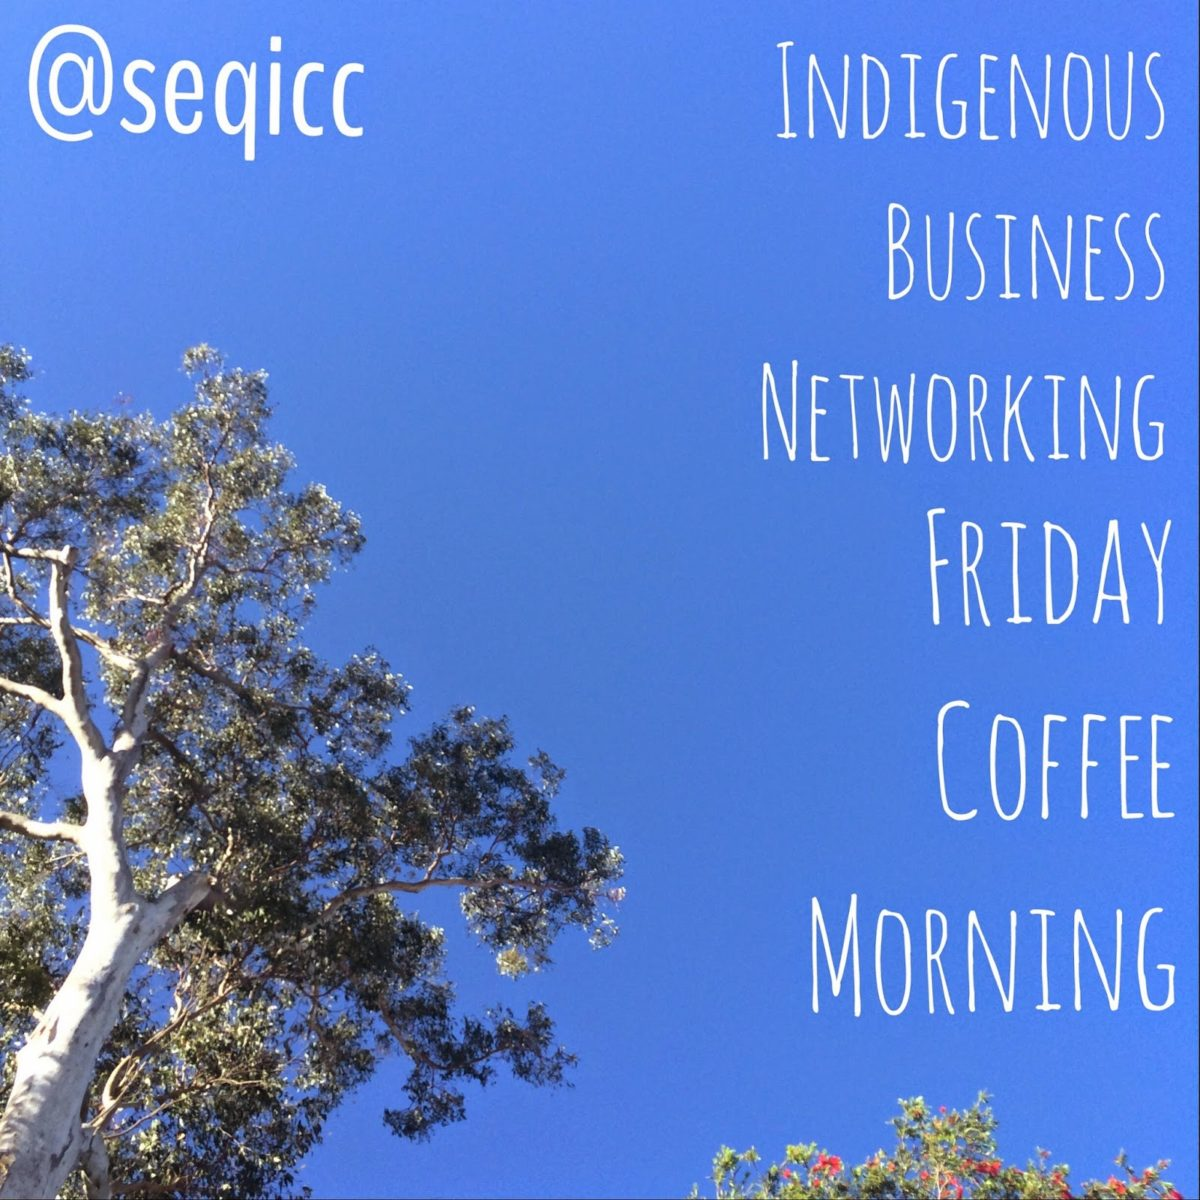 Indigenous Business Networking – Friday Coffee Morning